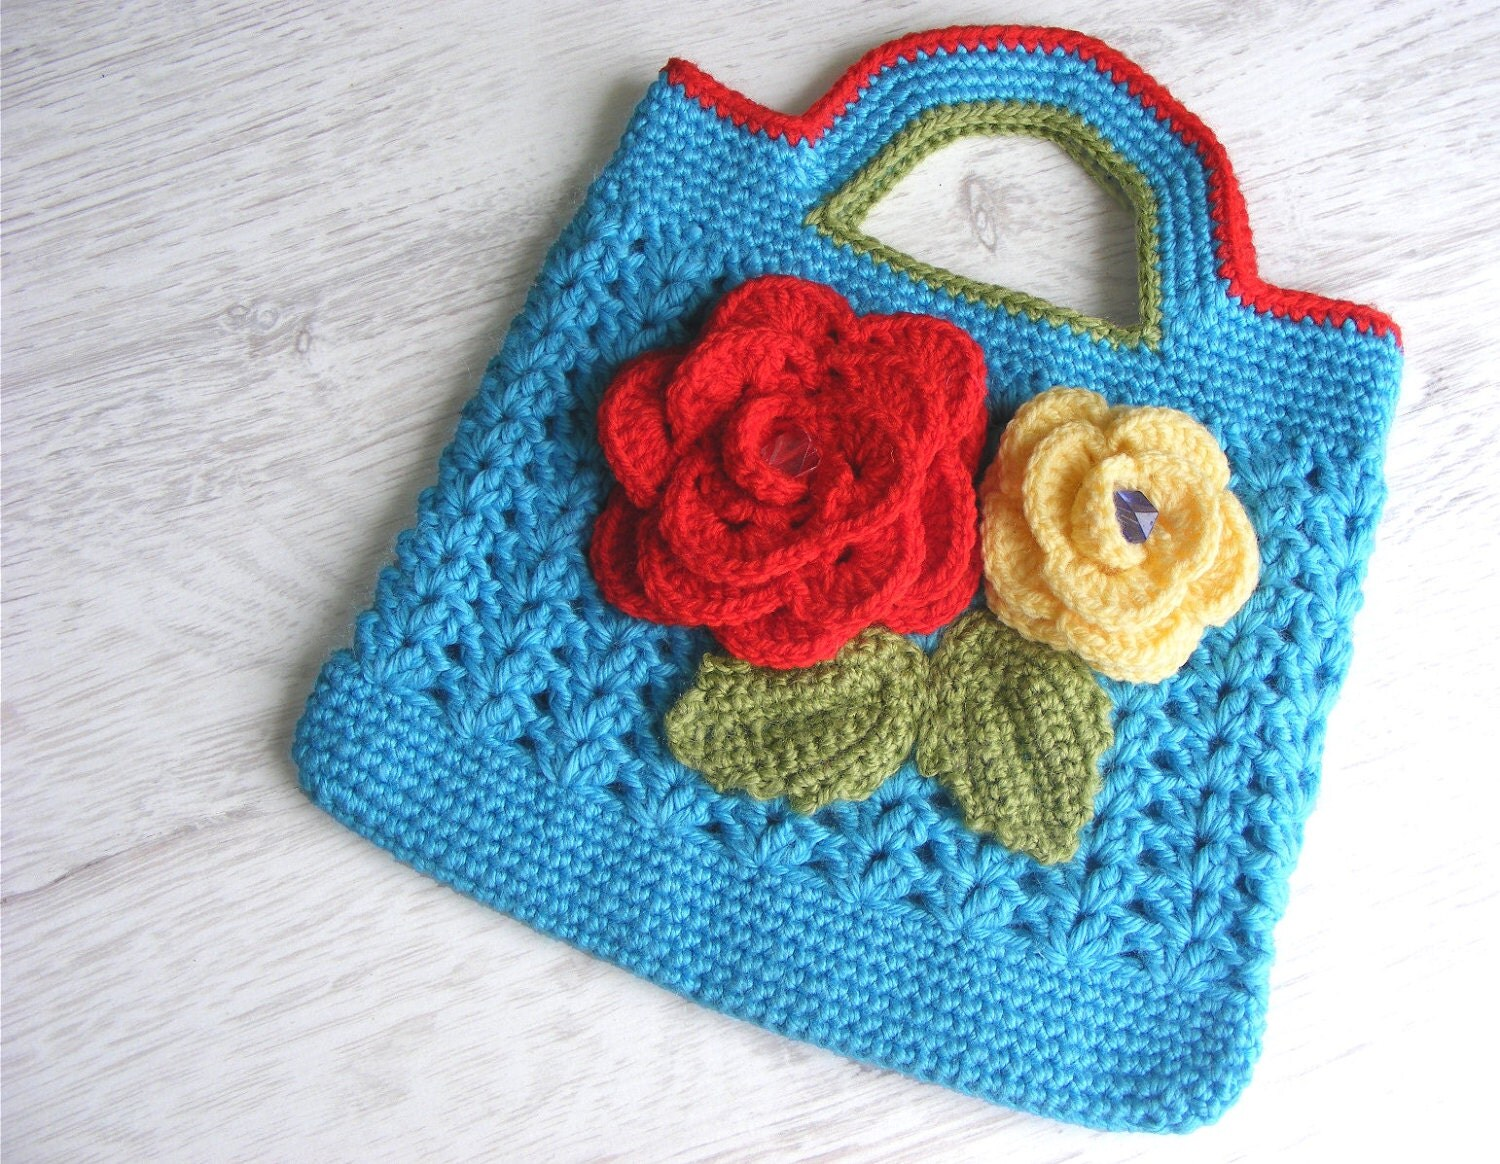 Crochet Bag For Girl : Girls crochet bag hand bag purse clutch with flowers by NatkaLV